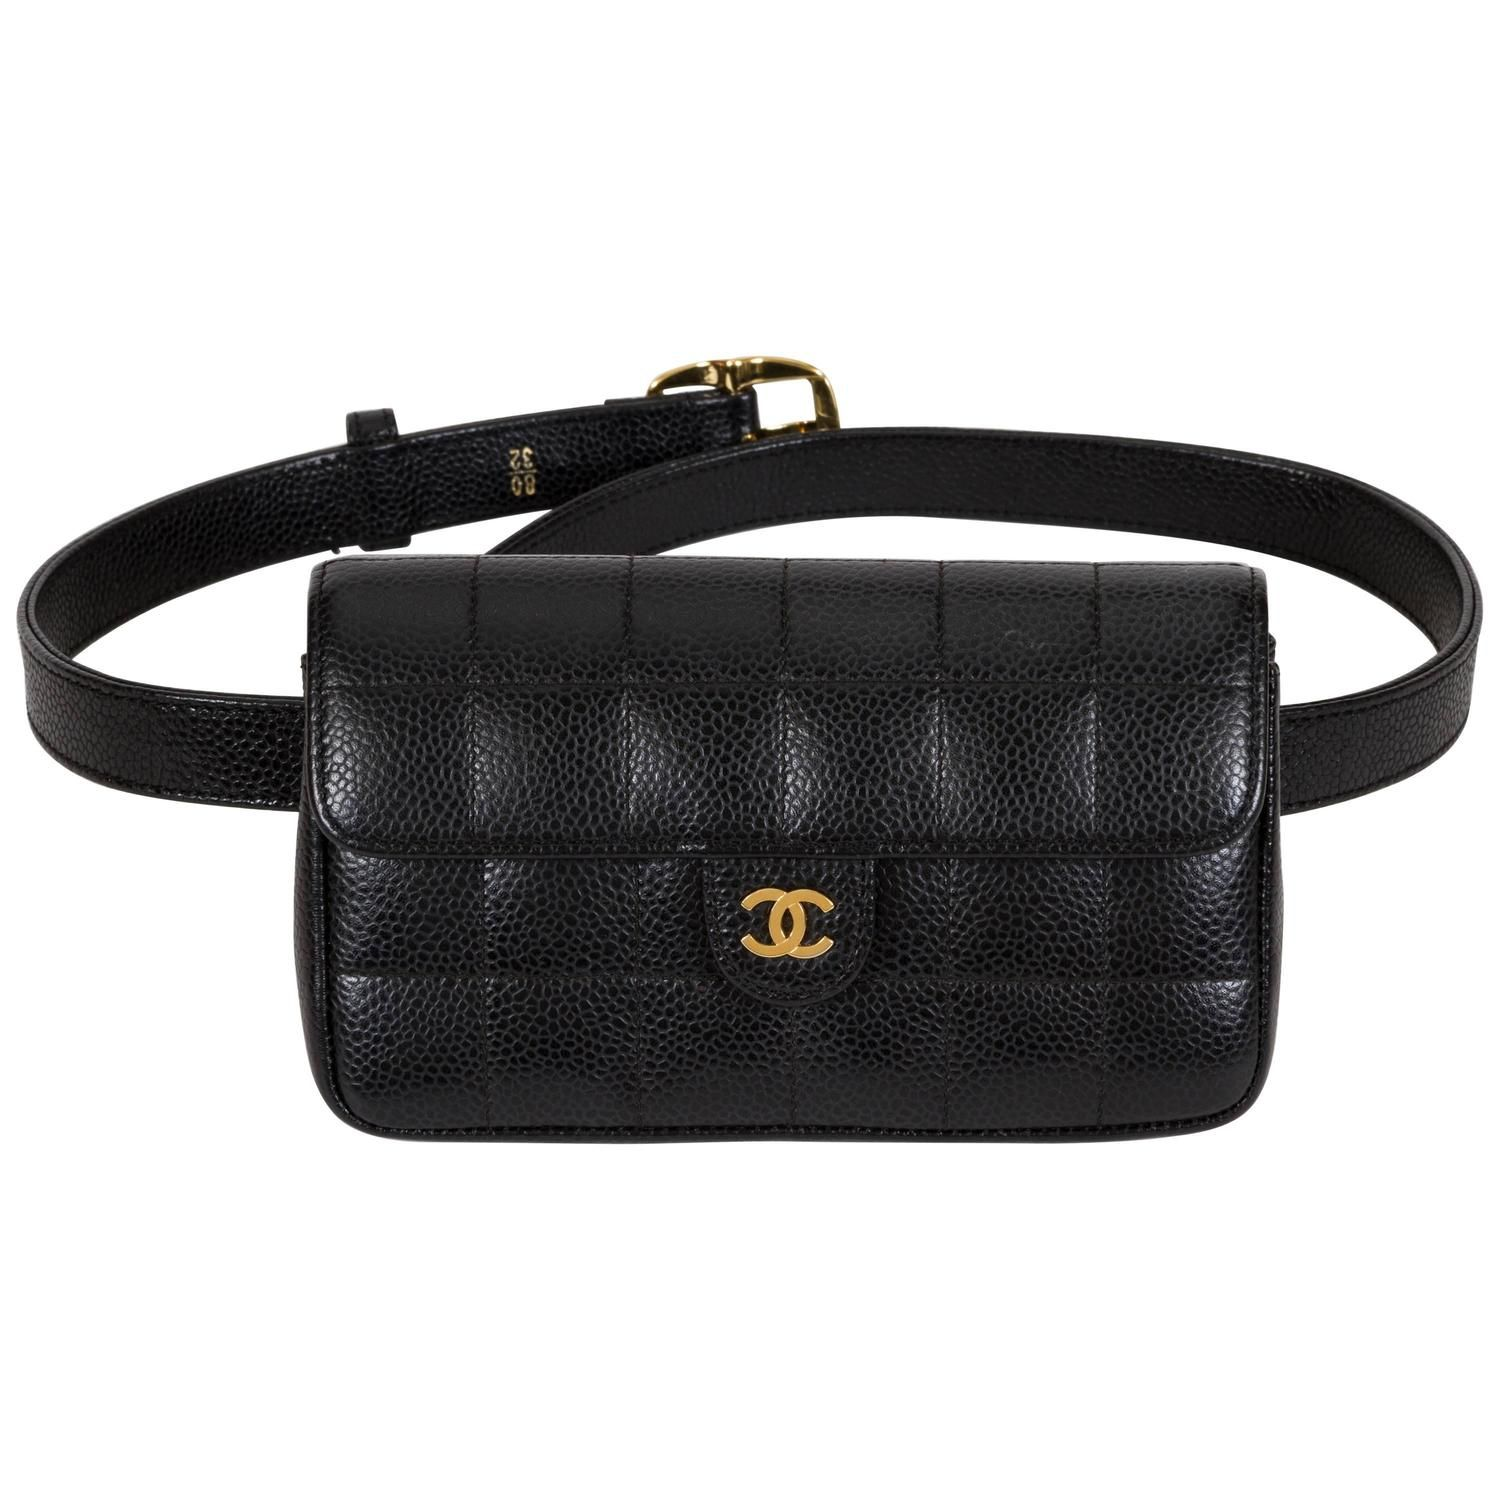 81d3b751cba5 Chanel Black Caviar Quilted Fanny Belt Pack Bag in 2019